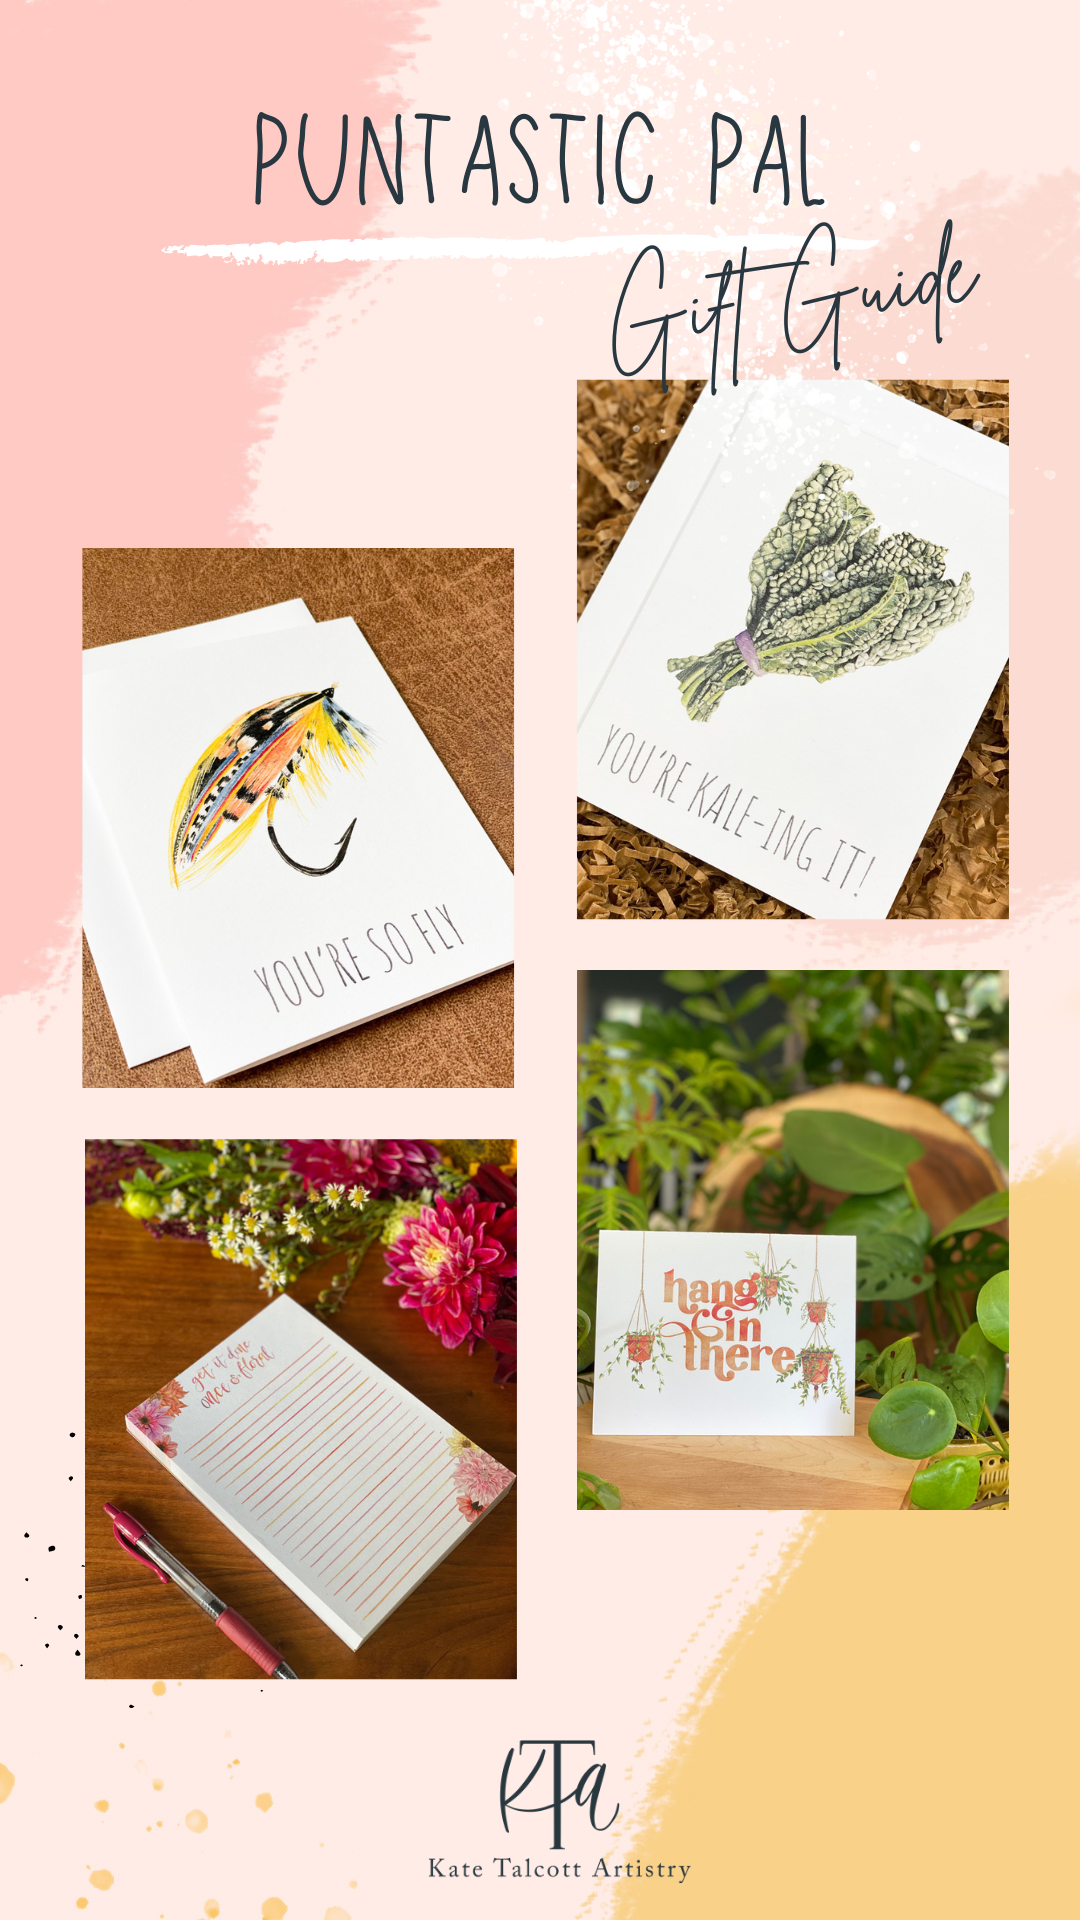 Pun products, fly fishing card, kale card, floral notepad, and hang in there card